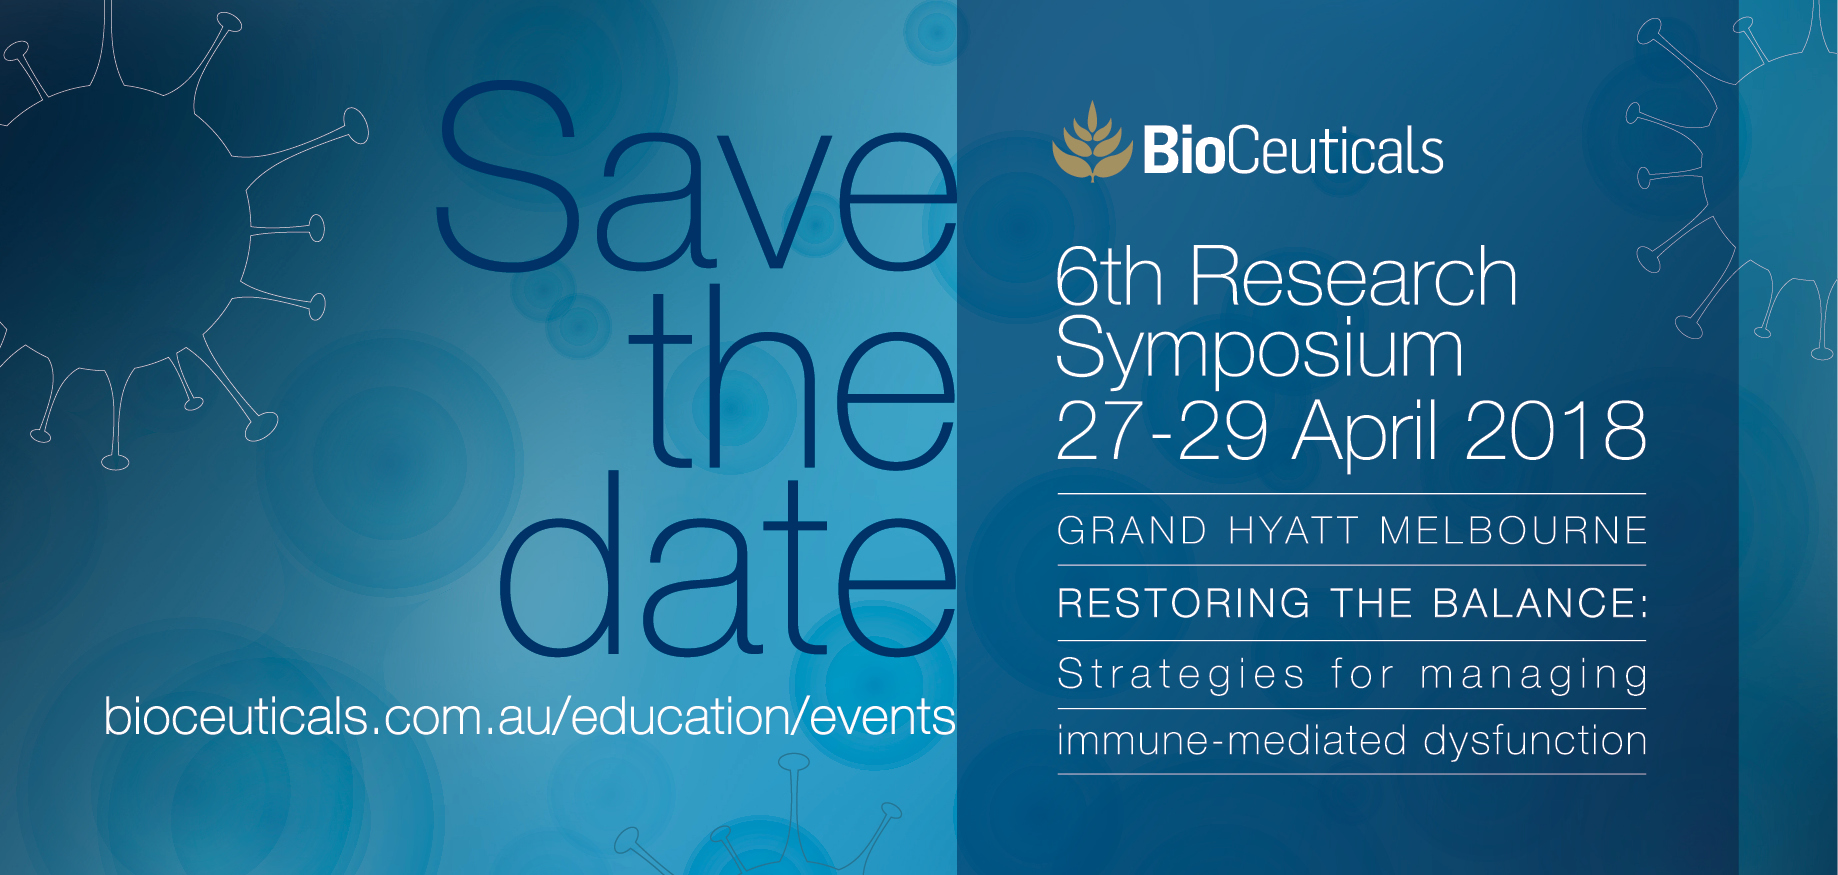 6th BioCeuticals Research Symposium